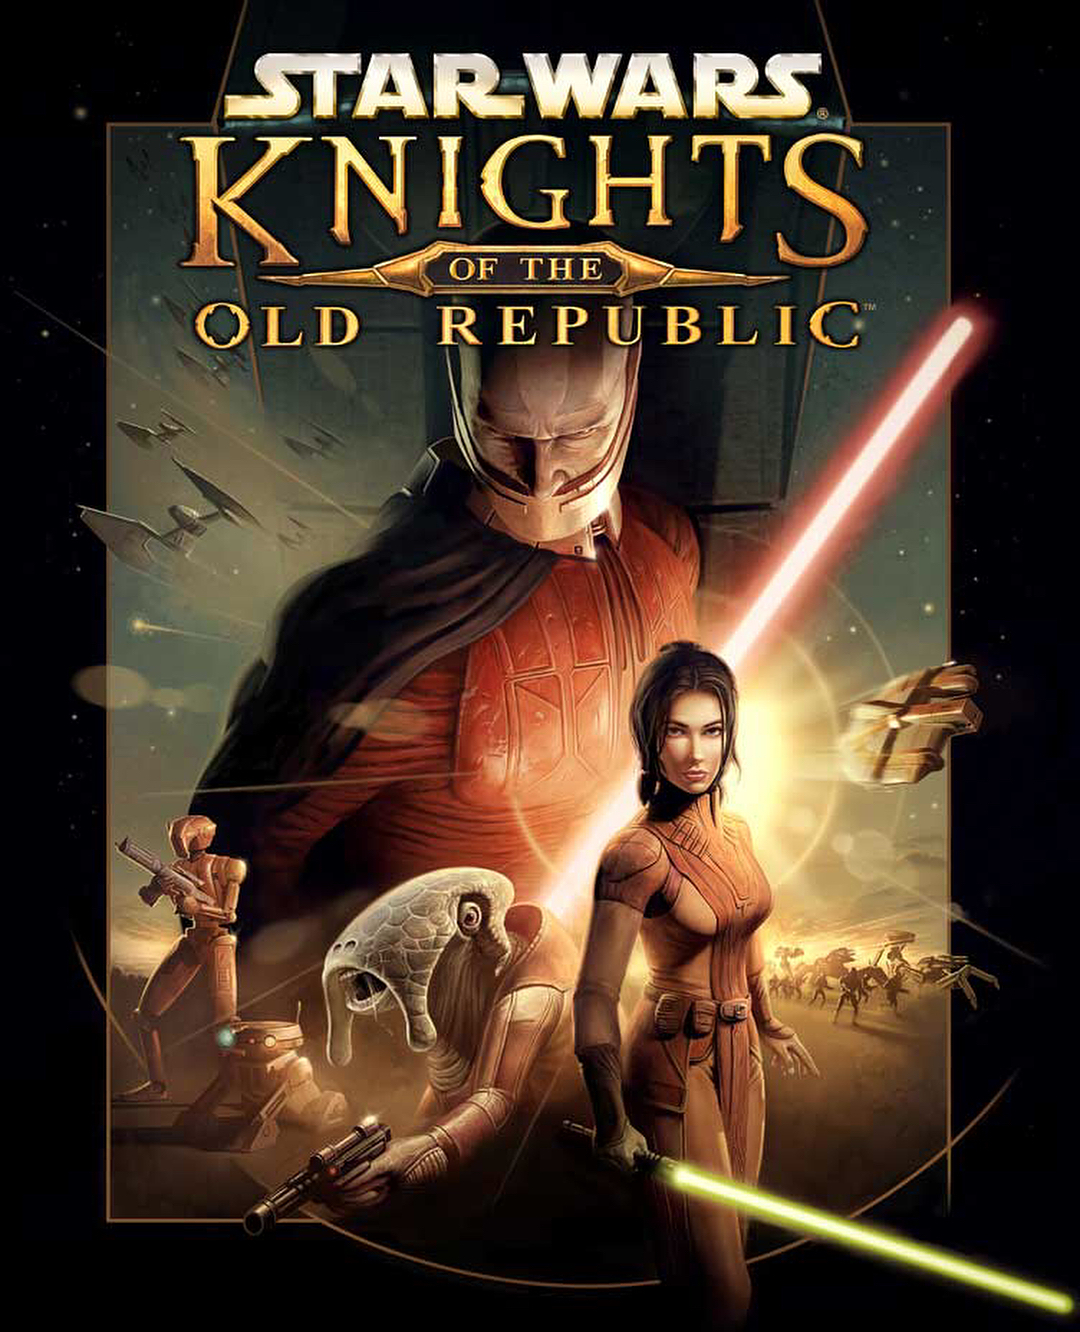 http://img1.wikia.nocookie.net/__cb20121212220515/ru.starwars/images/0/0d/Star-wars-knights-of-the-old-republic.jpg